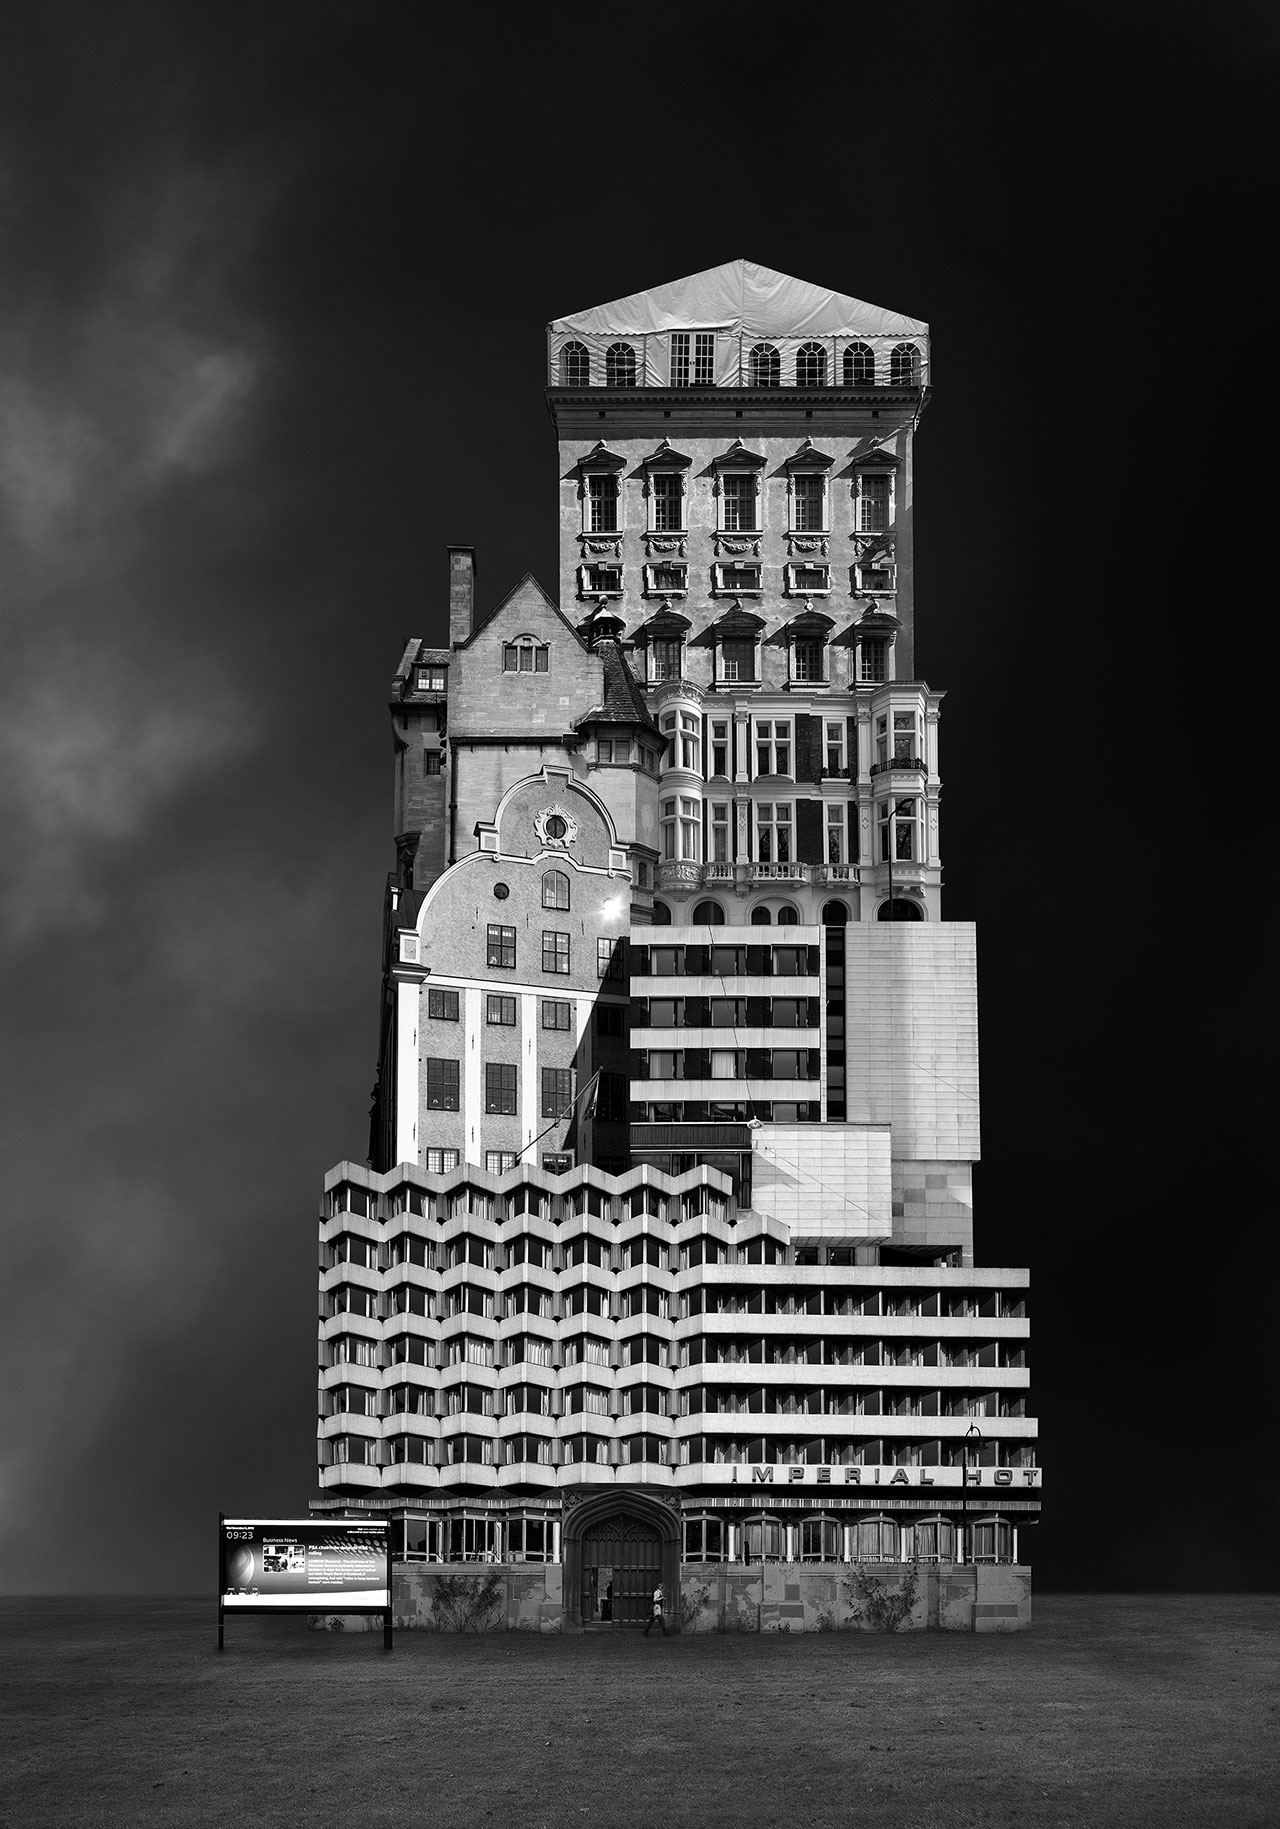 Beomsik Won,Archisculpture 009, 2012. Archival pigment print, 100x70 or 171x120cm.